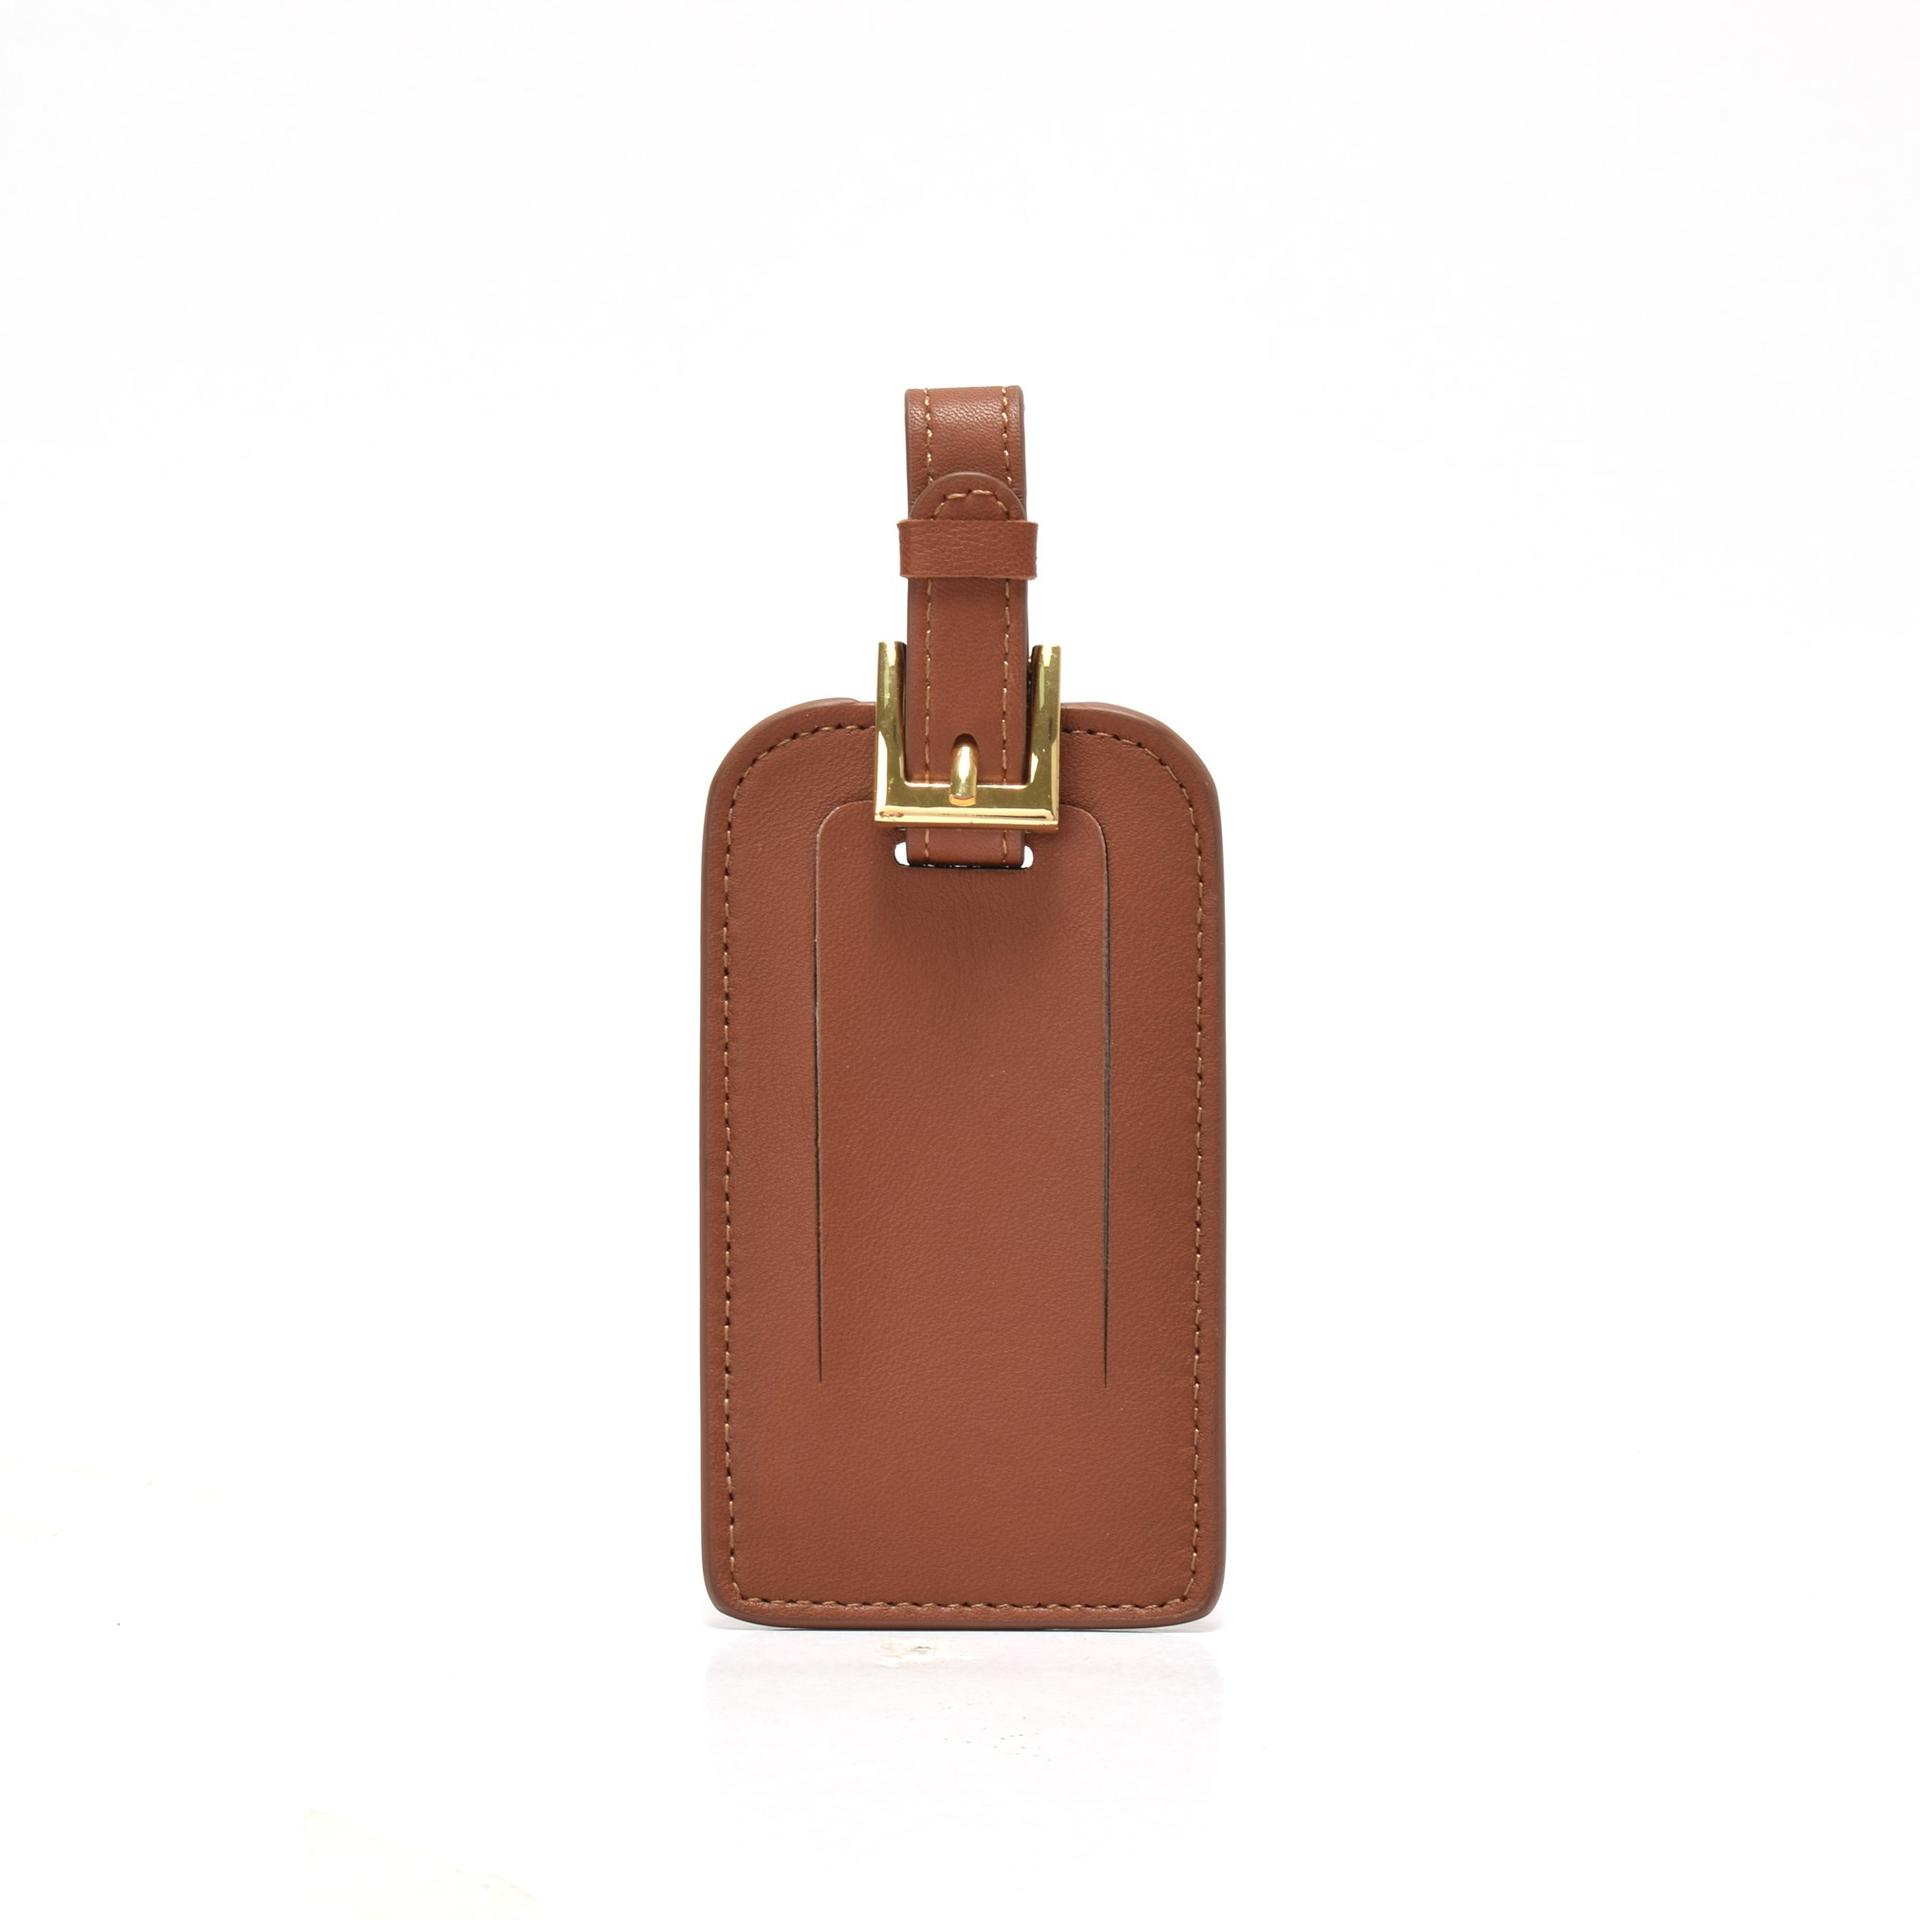 Women's luggage tag in leather  leahter luggage tag for women